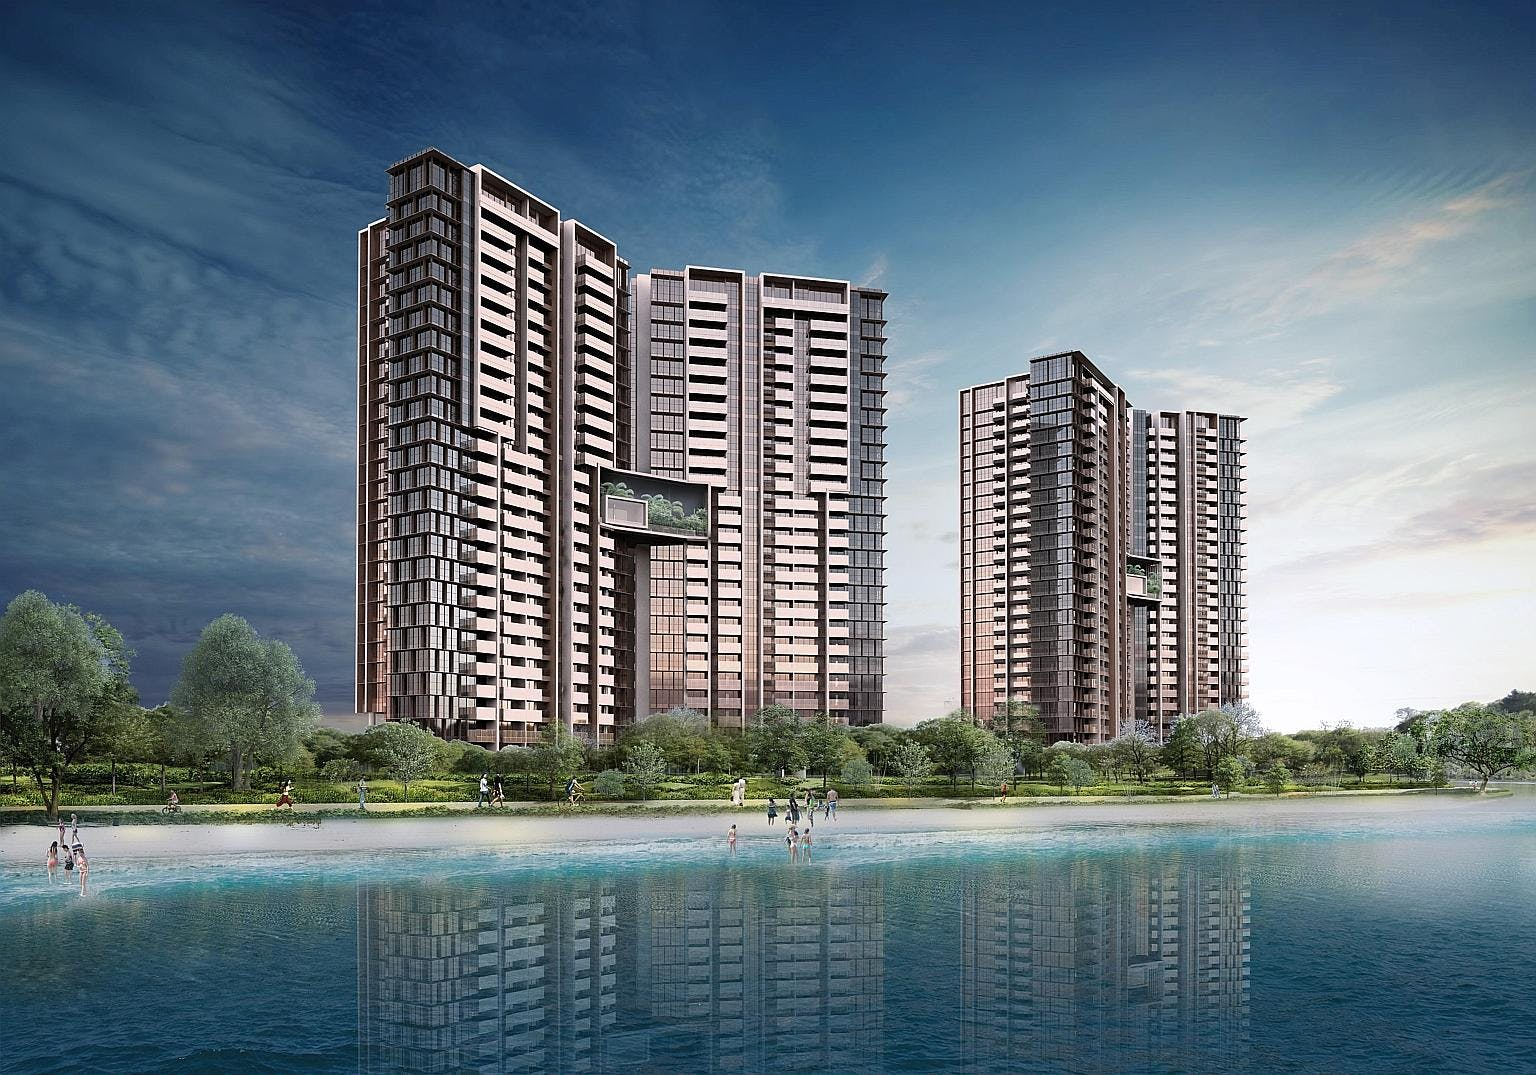 A view from the sea: Seaside Residences